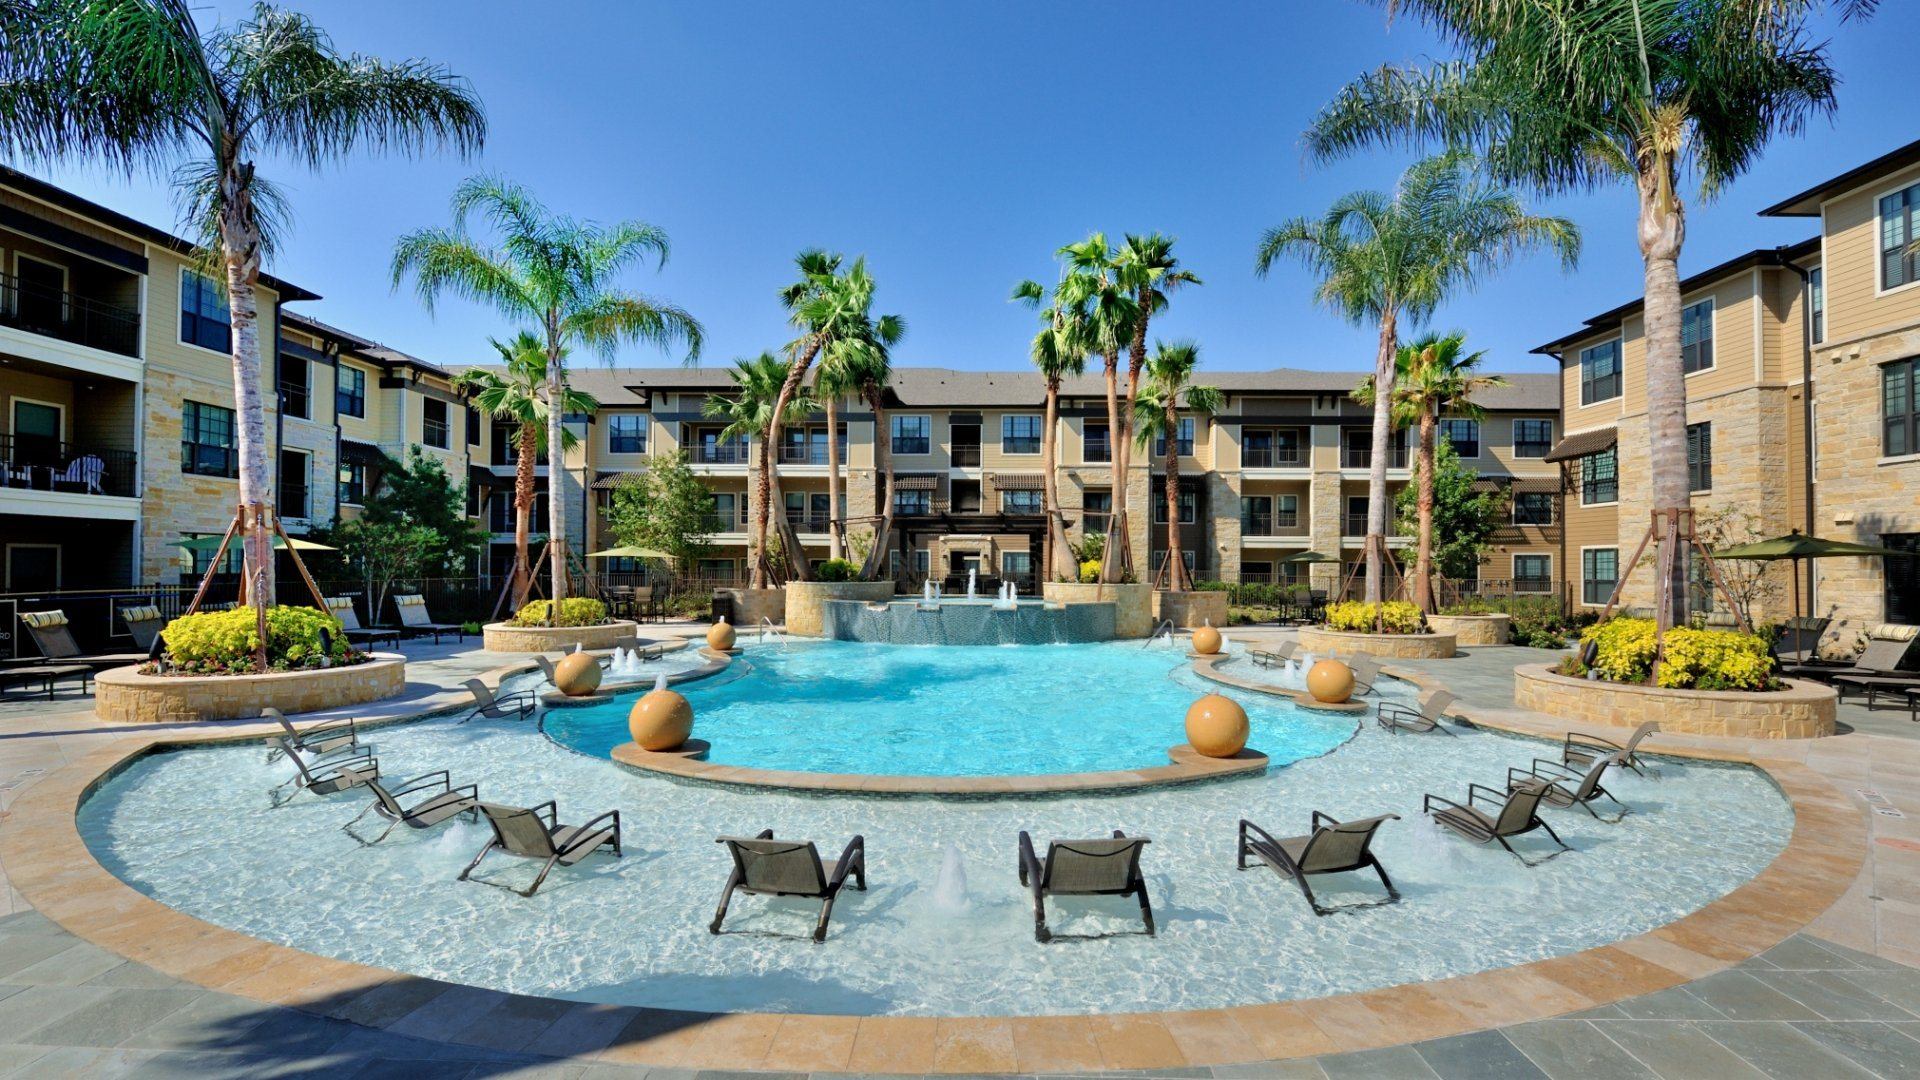 BSR Acquires 370-Unit Broadstone Park West Apartment Community in Growing Houston Metropolitan Market for $51 Million